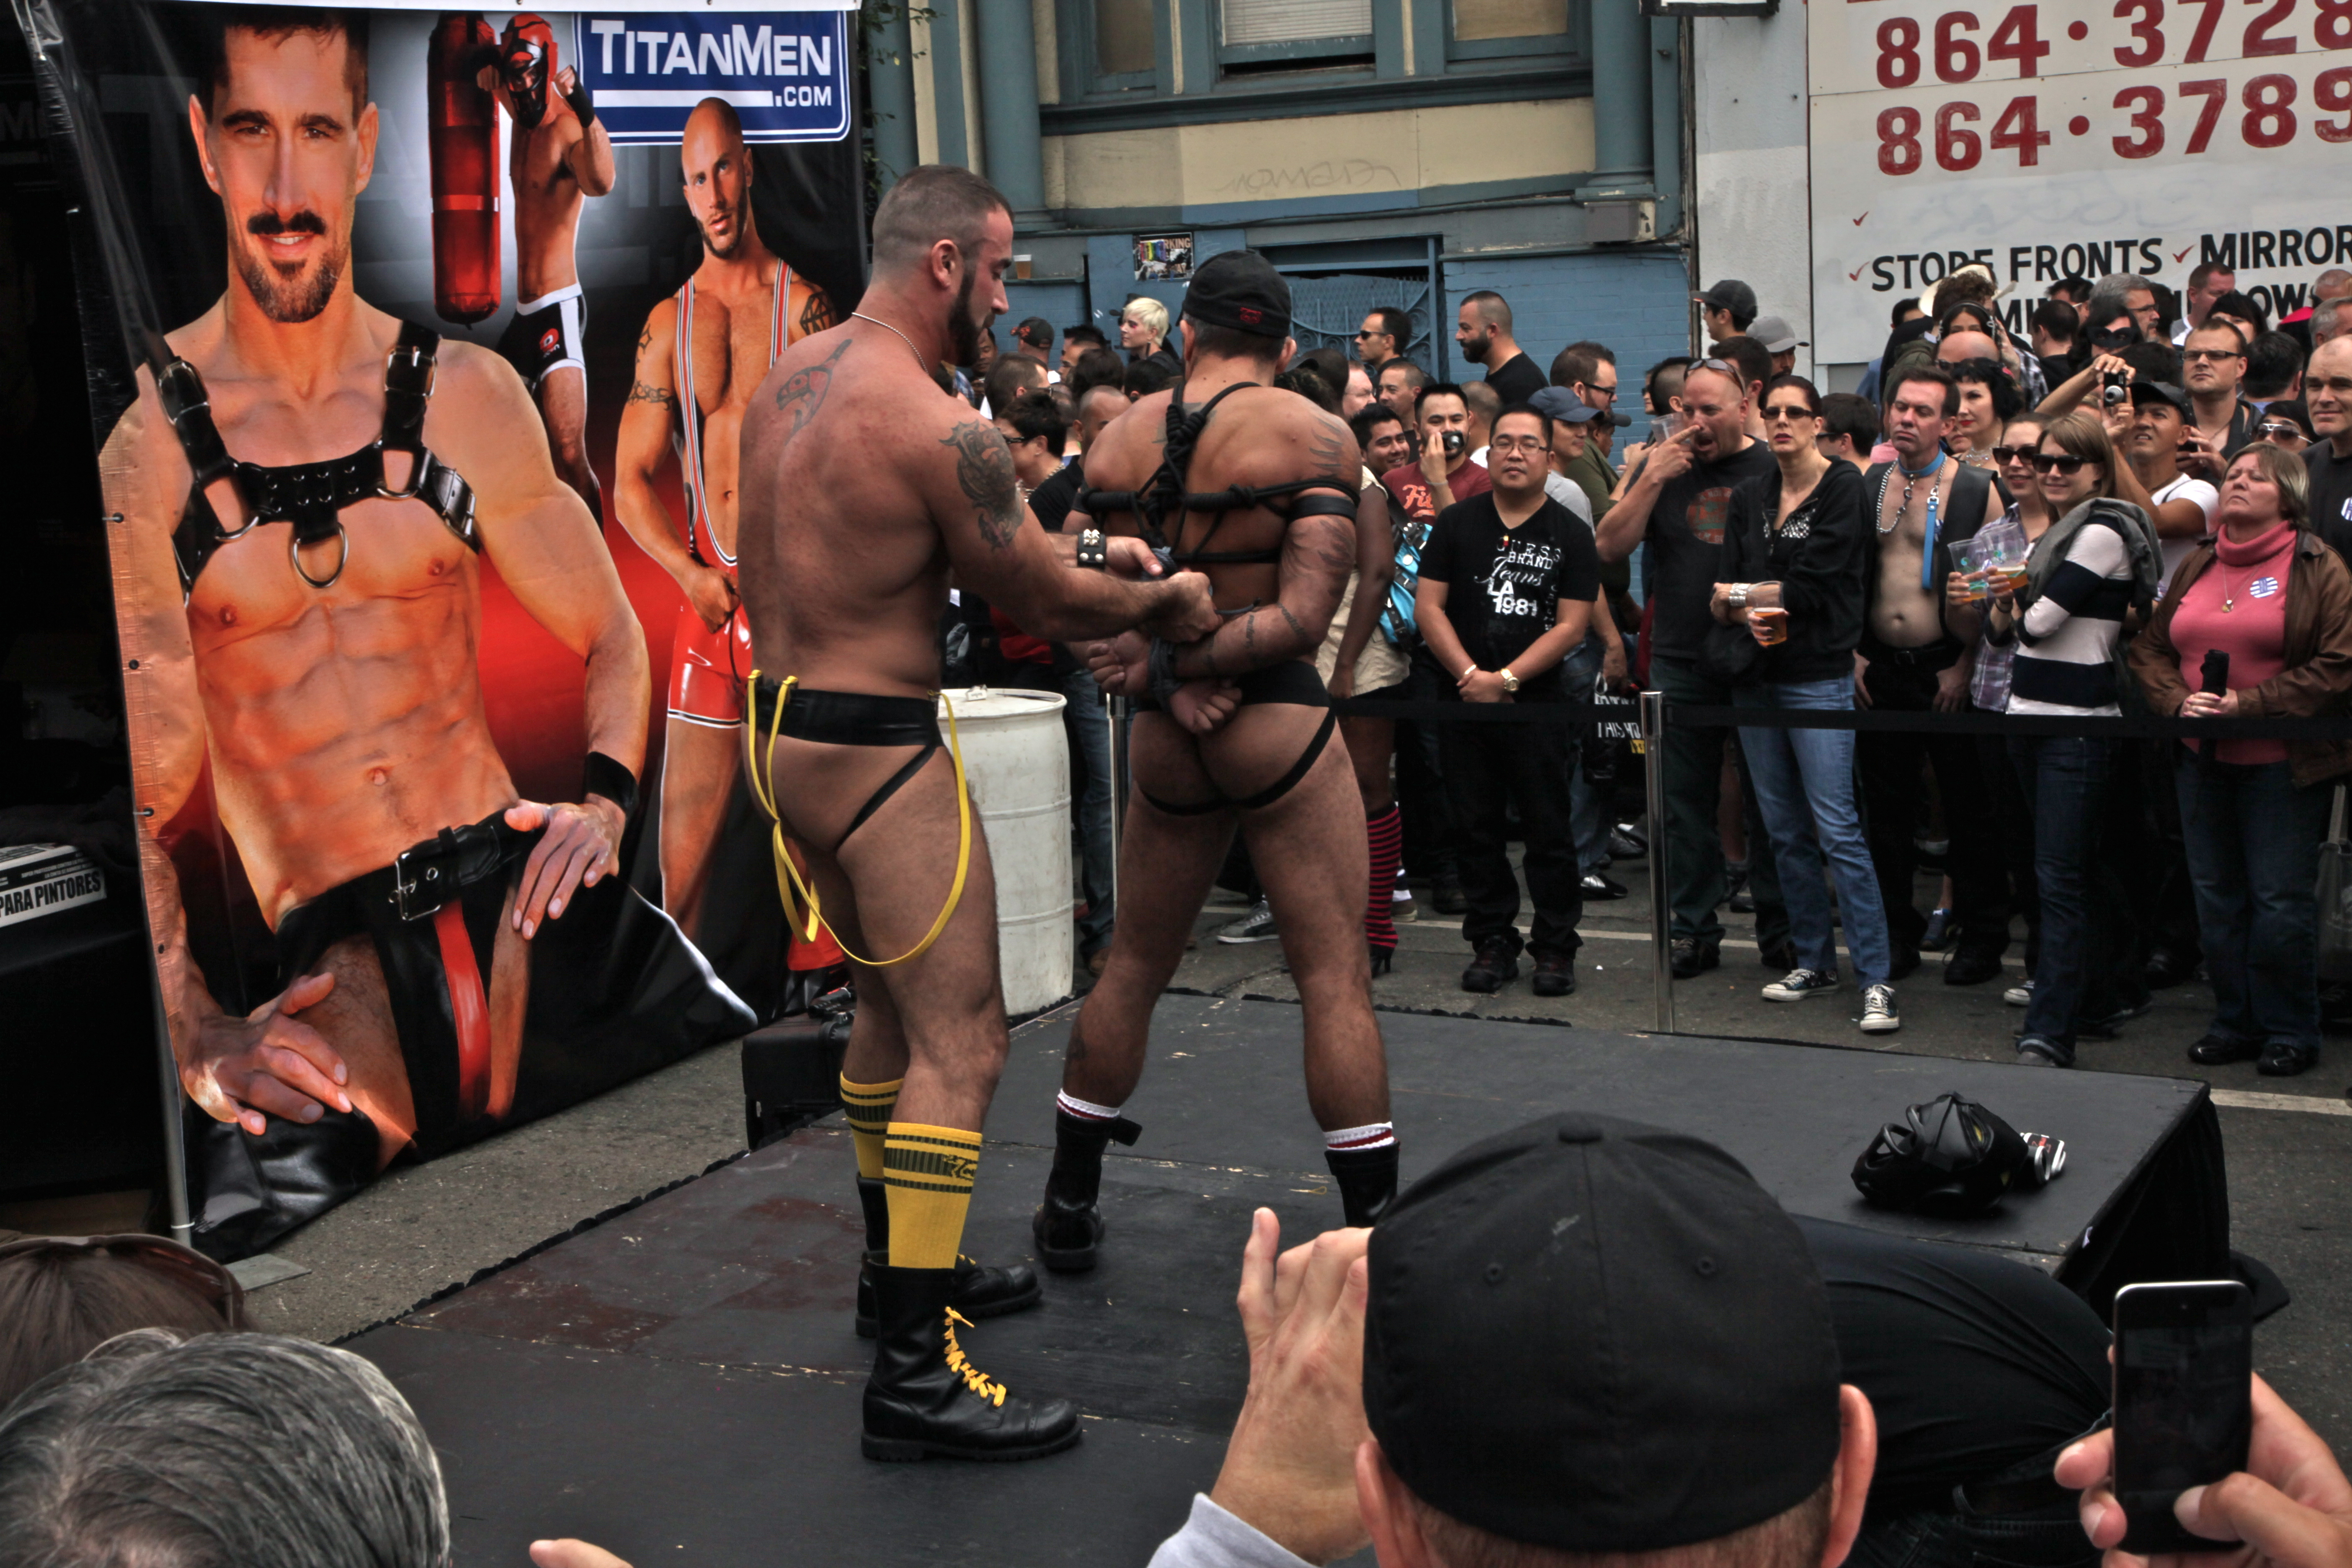 Thank porn tsars at folsom street fair